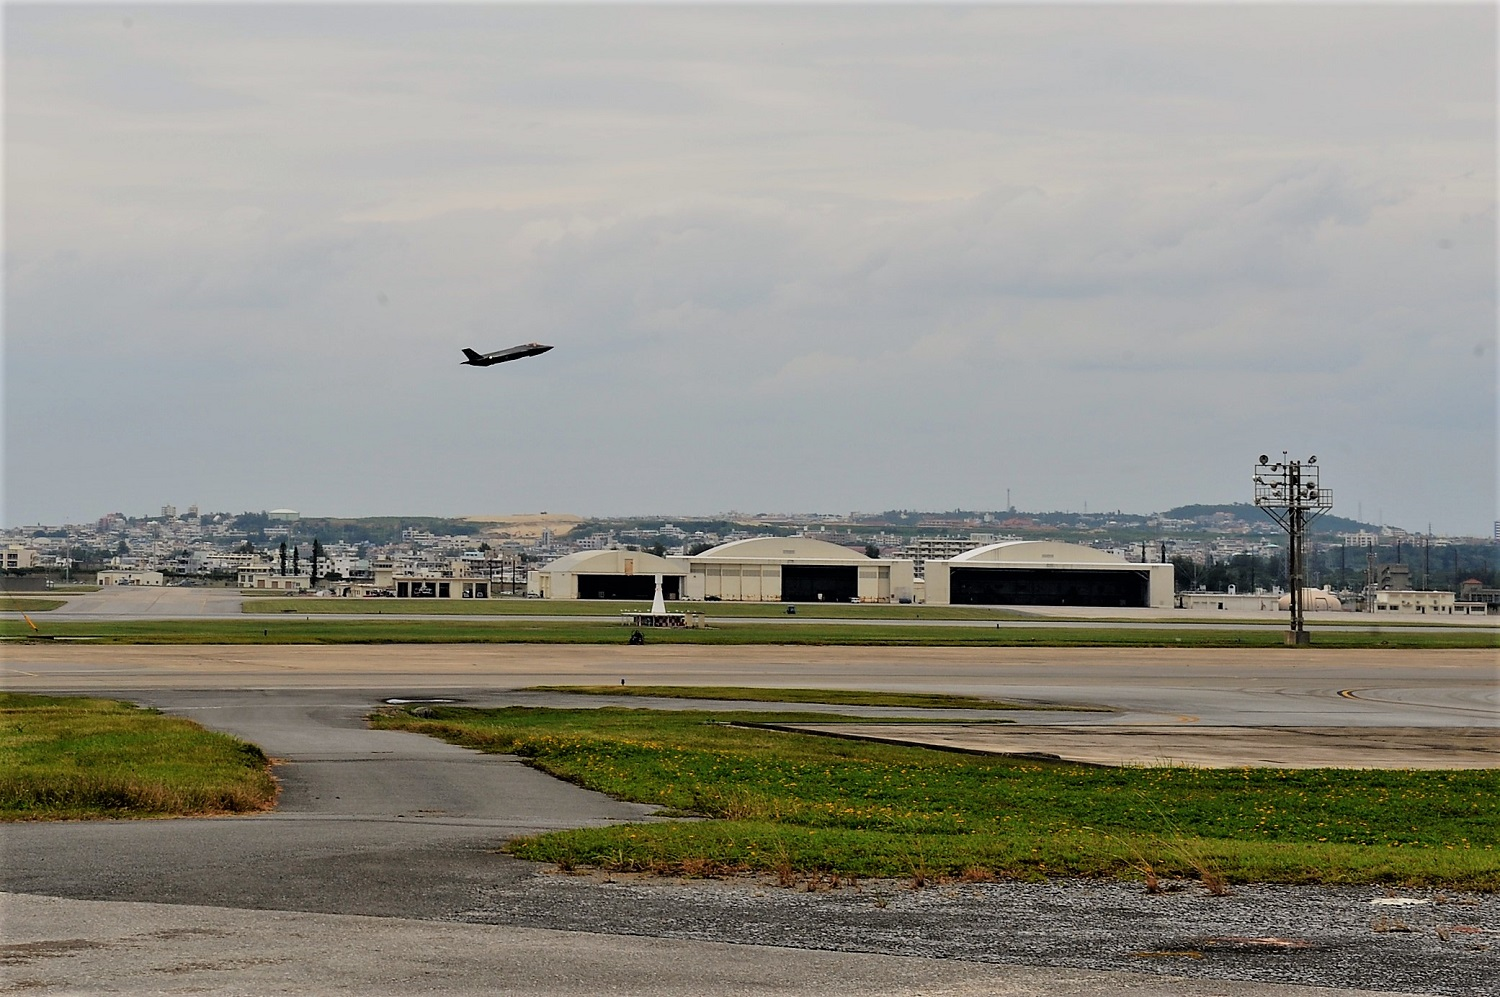 F-35 loses aircraft panel during training flight near Okinawa